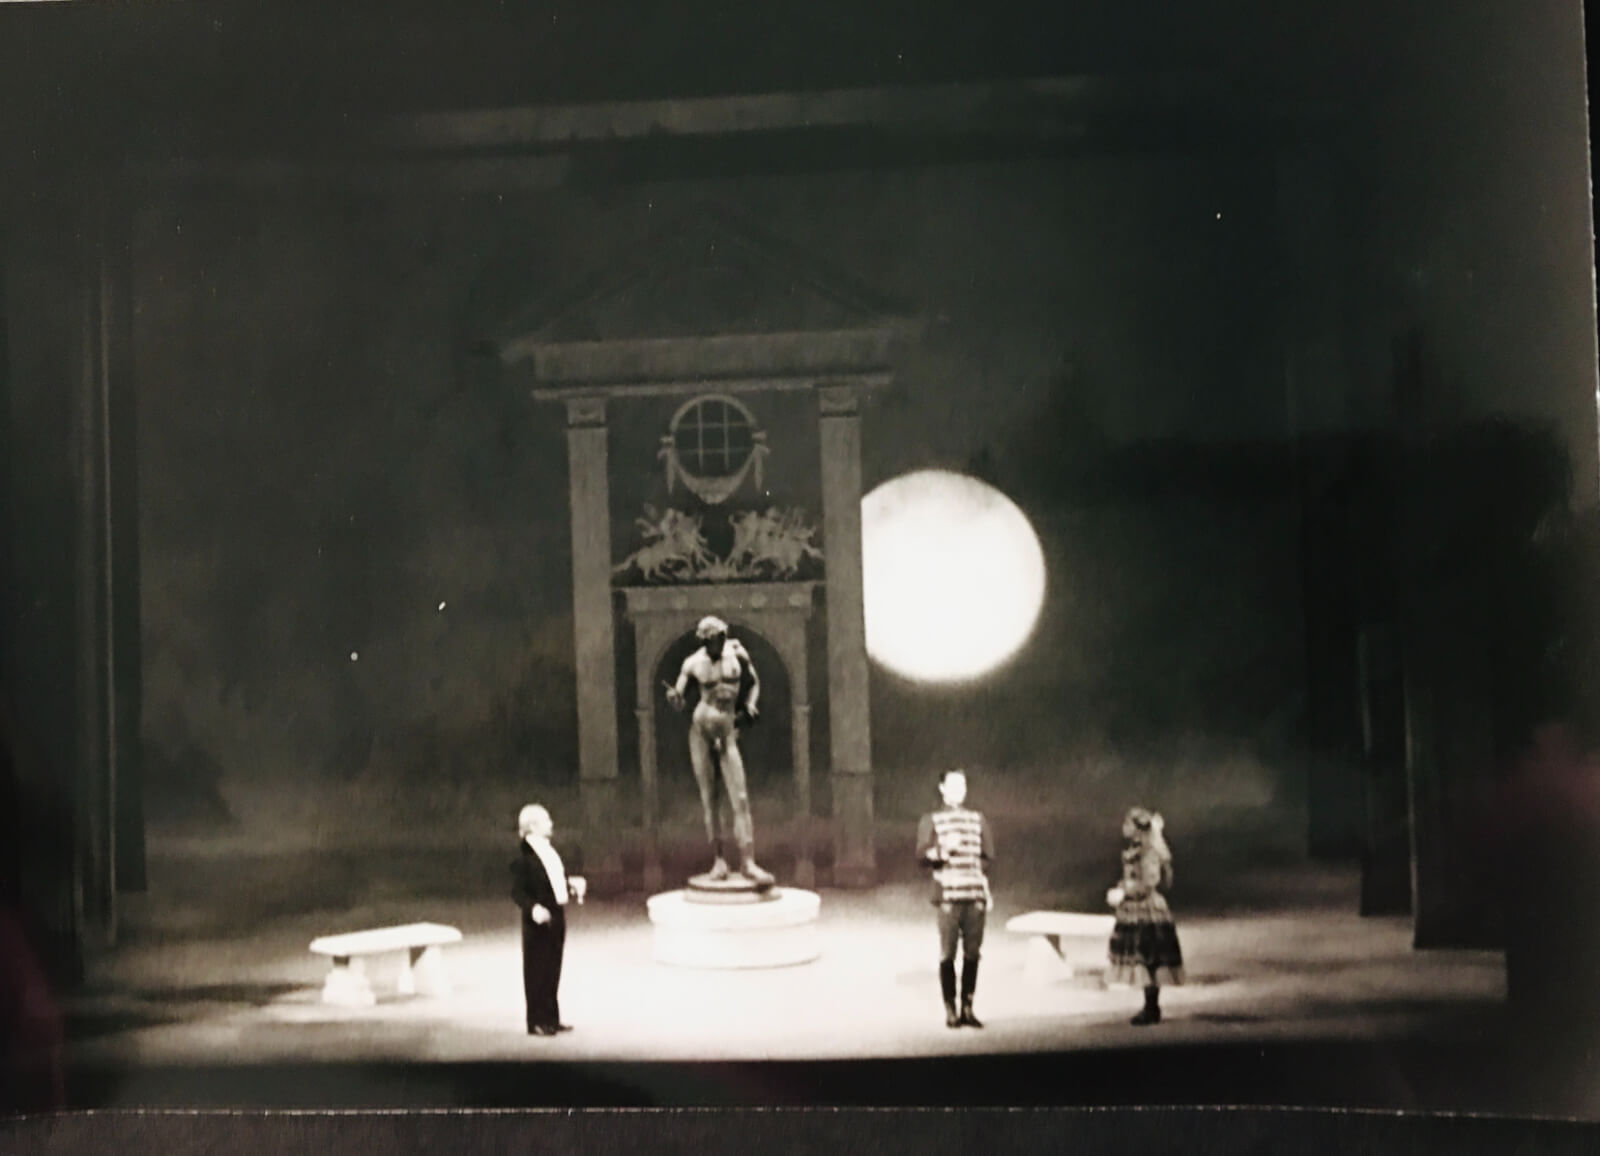 """Michael Anania's garden set for """"In Praise of Women"""". There is an a large David-like statue in the center under a full moon in A Little Night Music."""